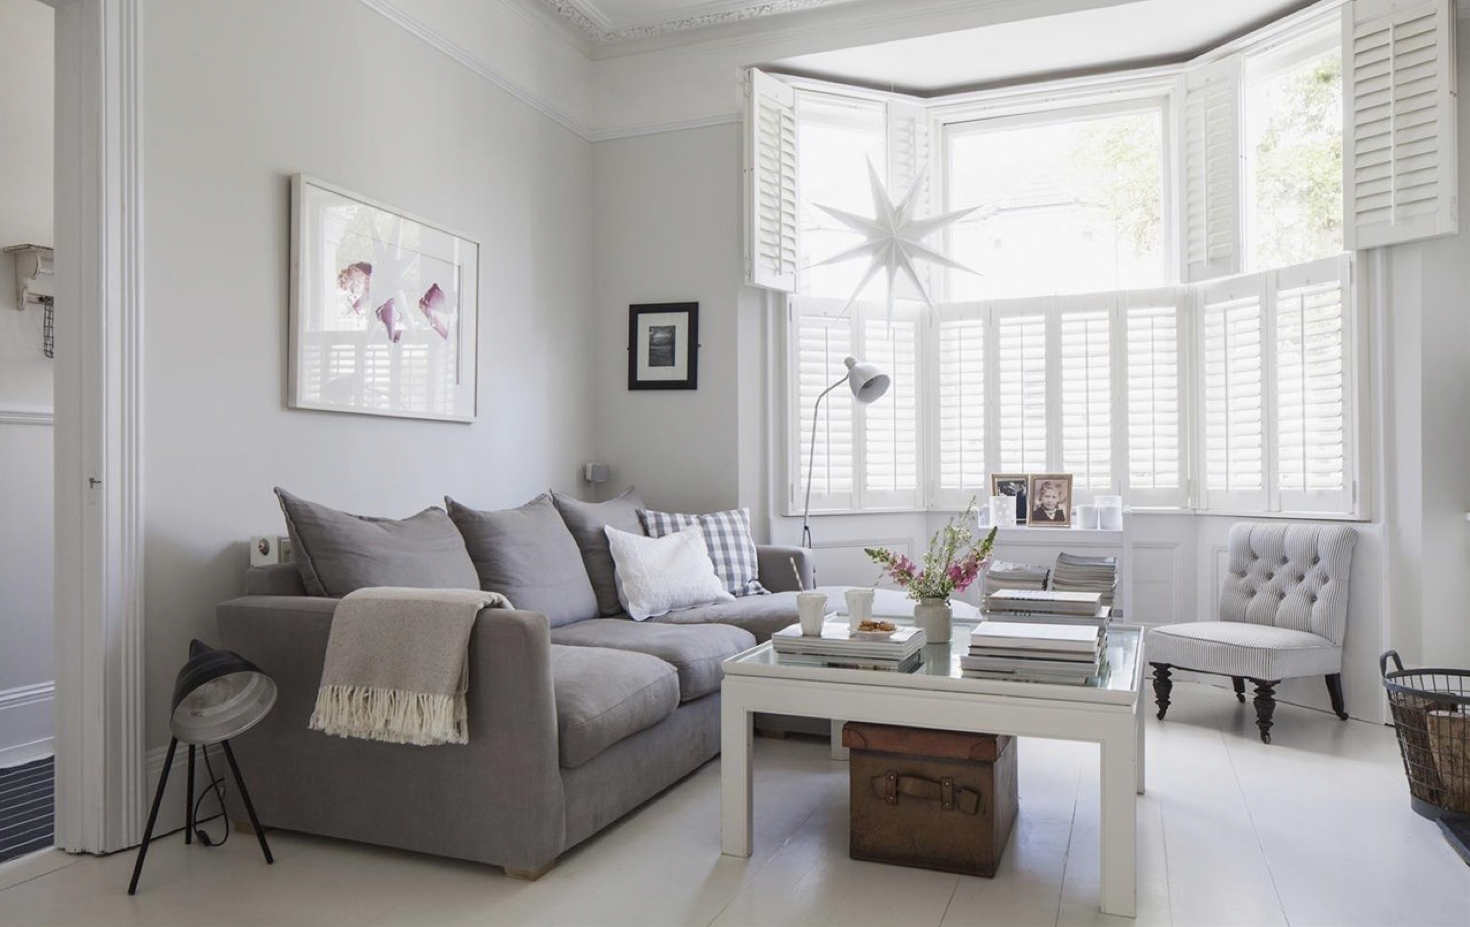 Victorian Terrace Sitting Room Plantation Shutters White Wooden Floors Grey Sofa Light Walls Eyebrow Makeup Tips